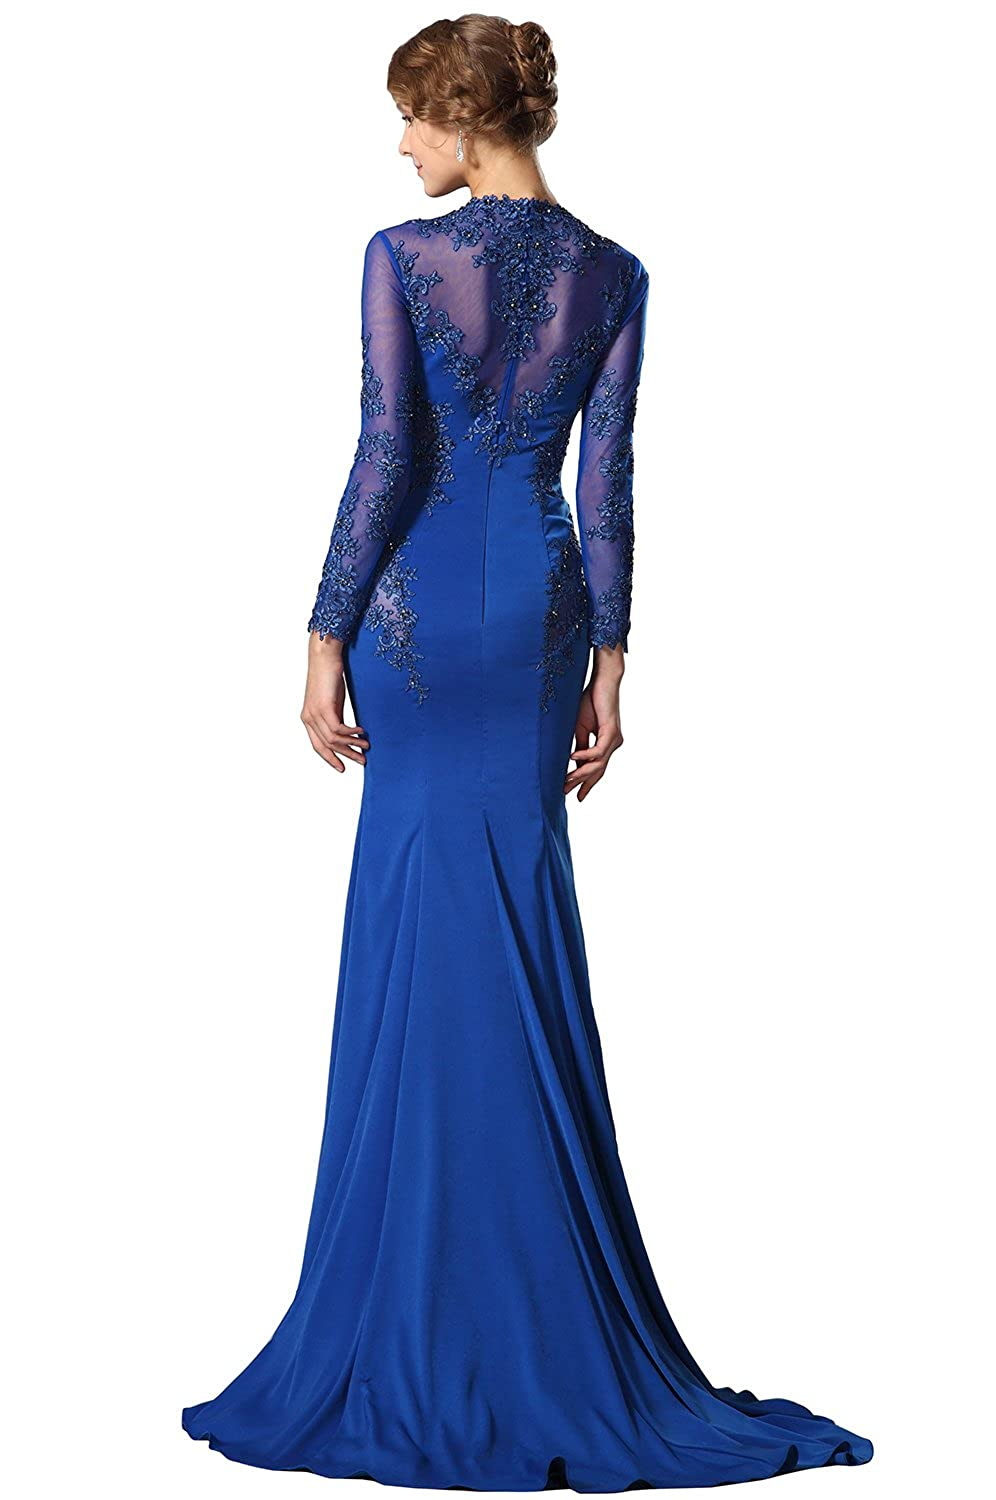 Amazon.com: New Arrival Blue Long Sleeves Lace Applique Evening Dress Formal Gown (02150205): Clothing